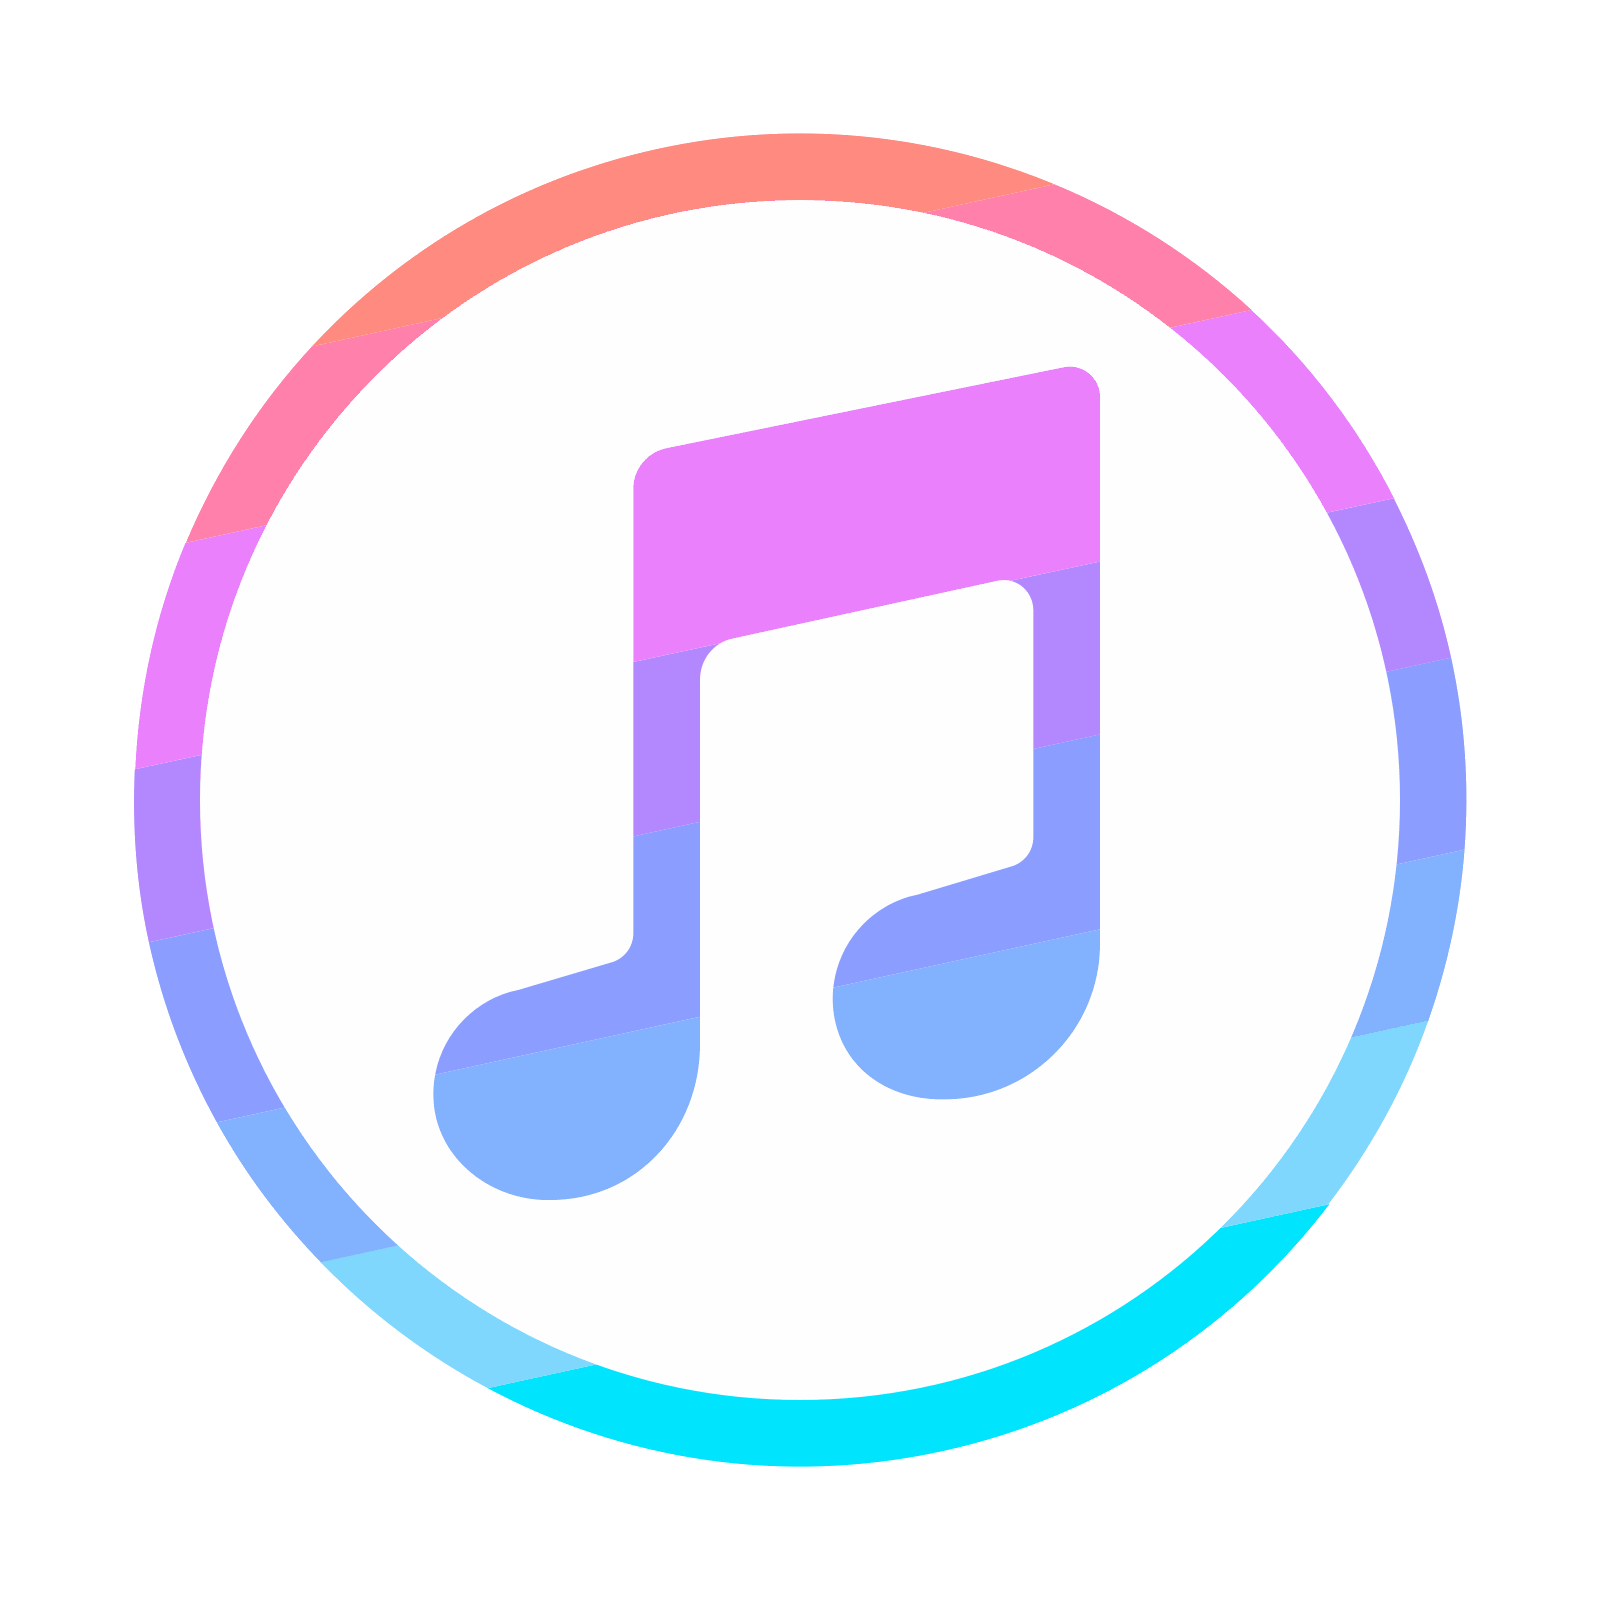 Itunes icon png. Free download and vector